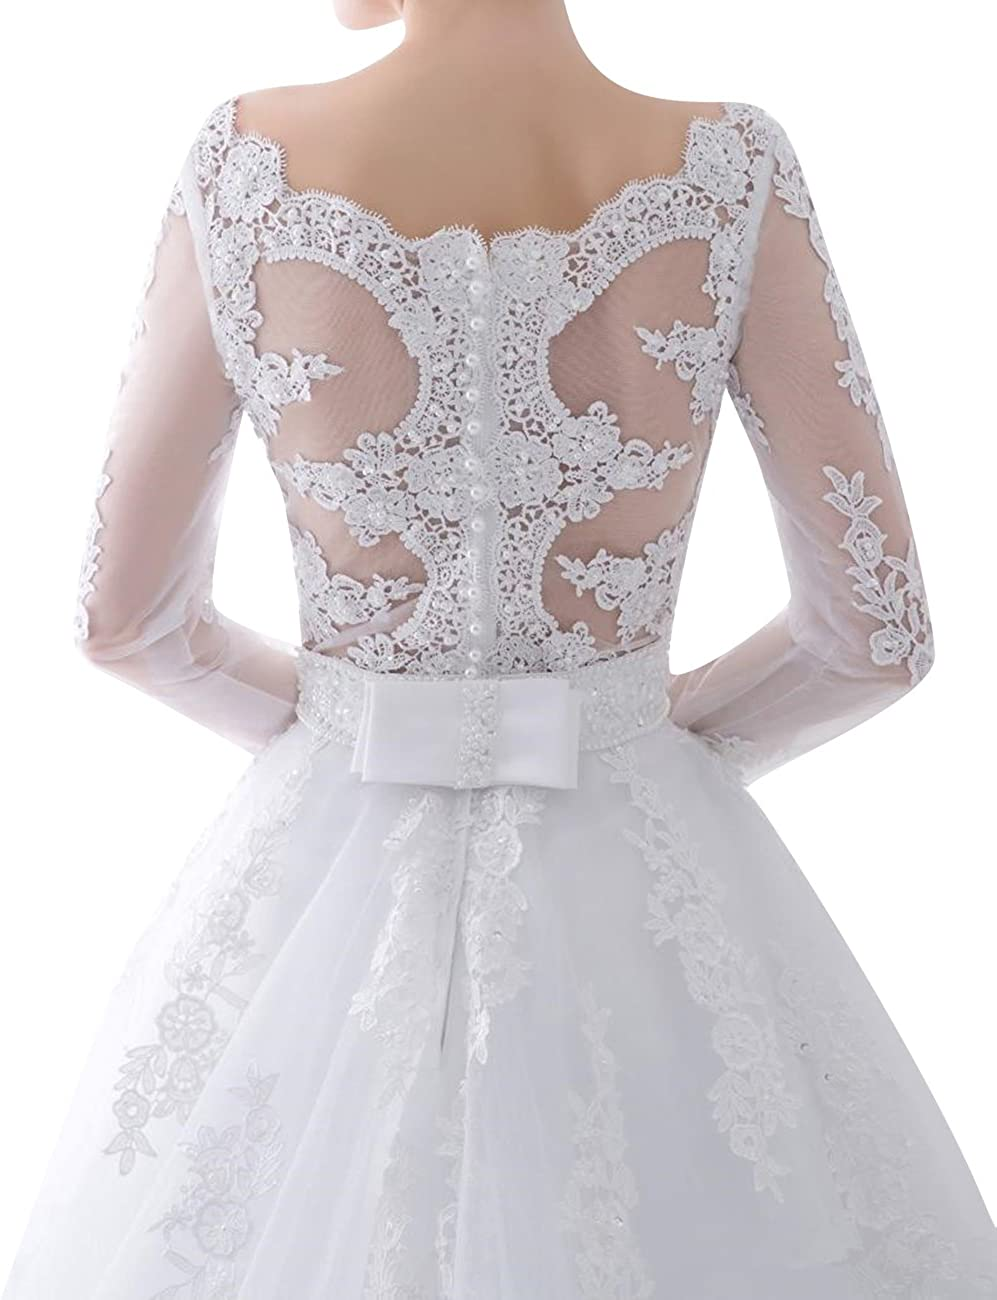 Long Sleeves Wedding Dresses Lace Appliques Bridal Gowns for Bride Vintage Sweep Train